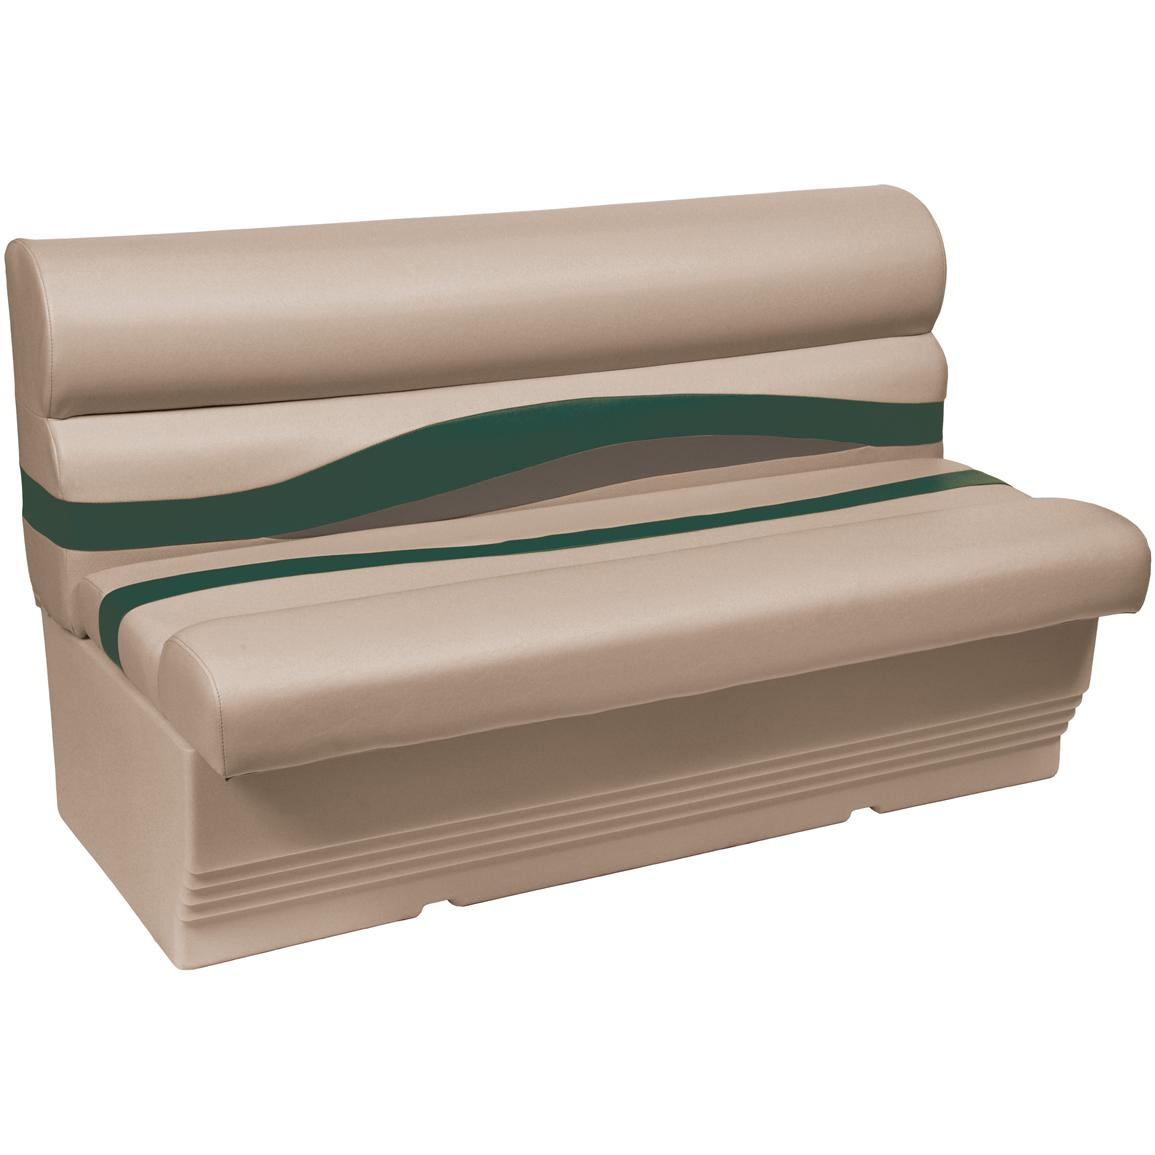 Wise® Premier 1100 Series 50 inch Pontoon Bench Seat, Color F